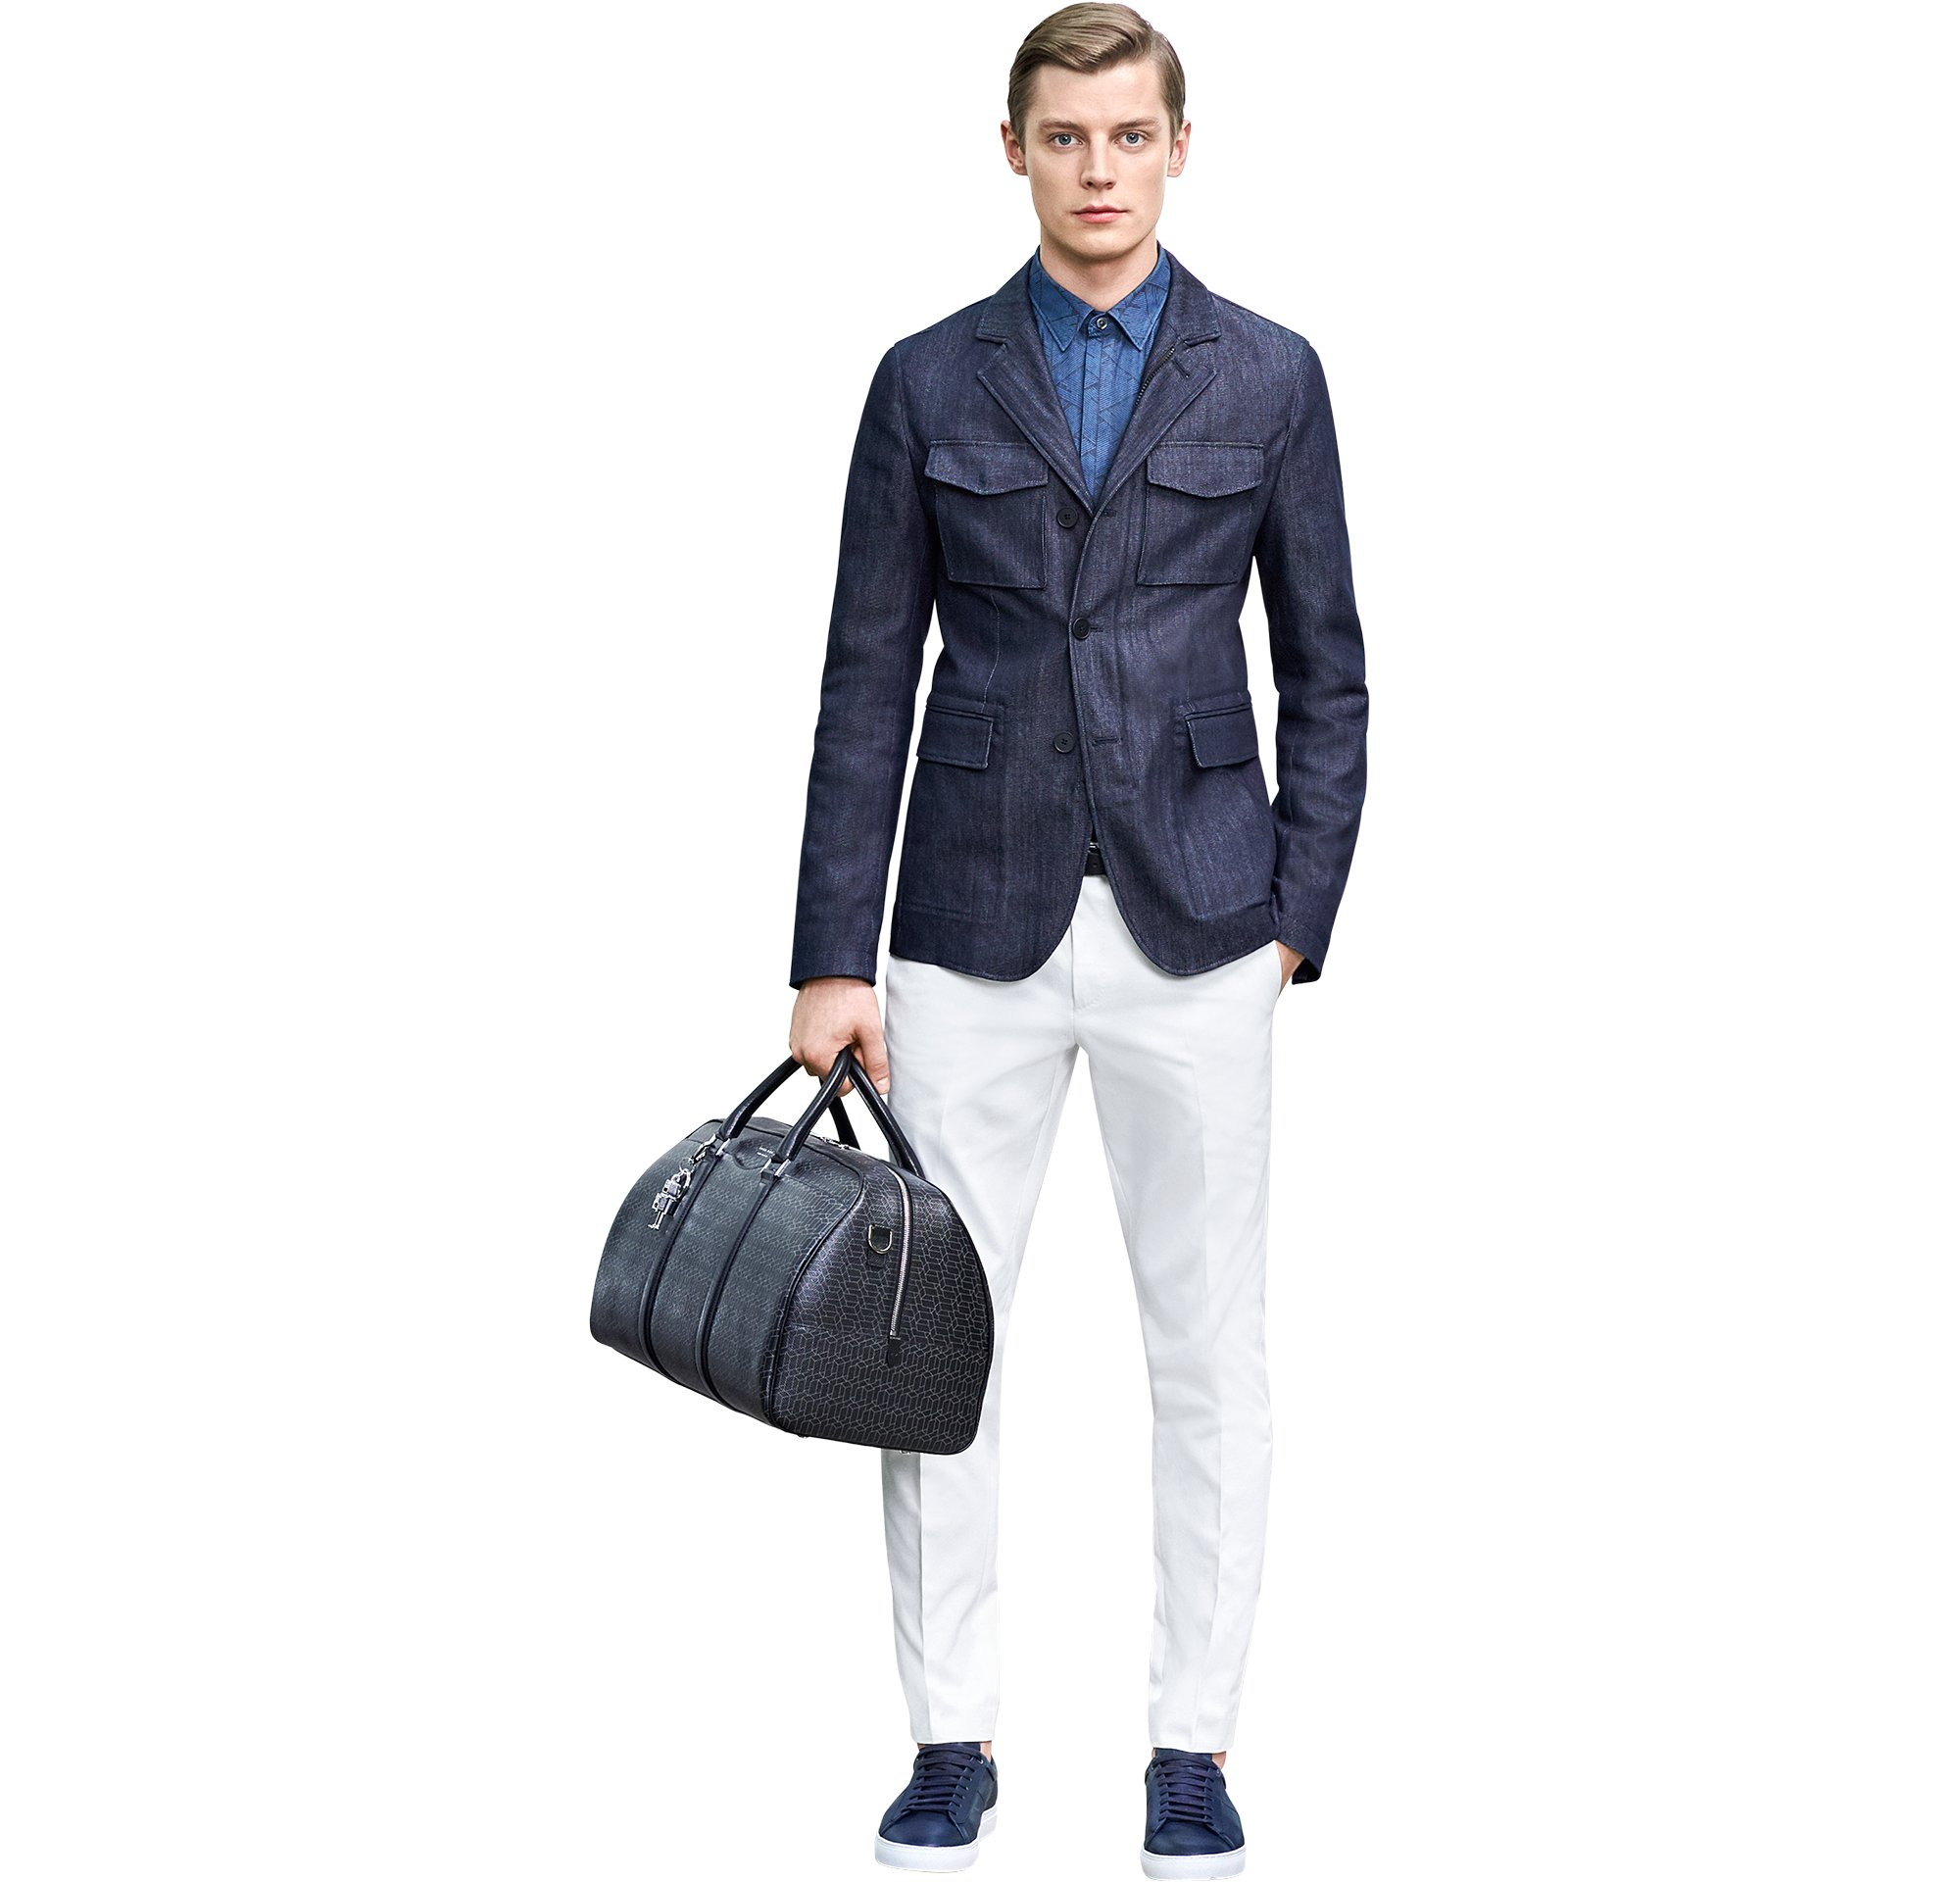 Blue jacket over blue shirt and white jeans with black bag and shoes by BOSS